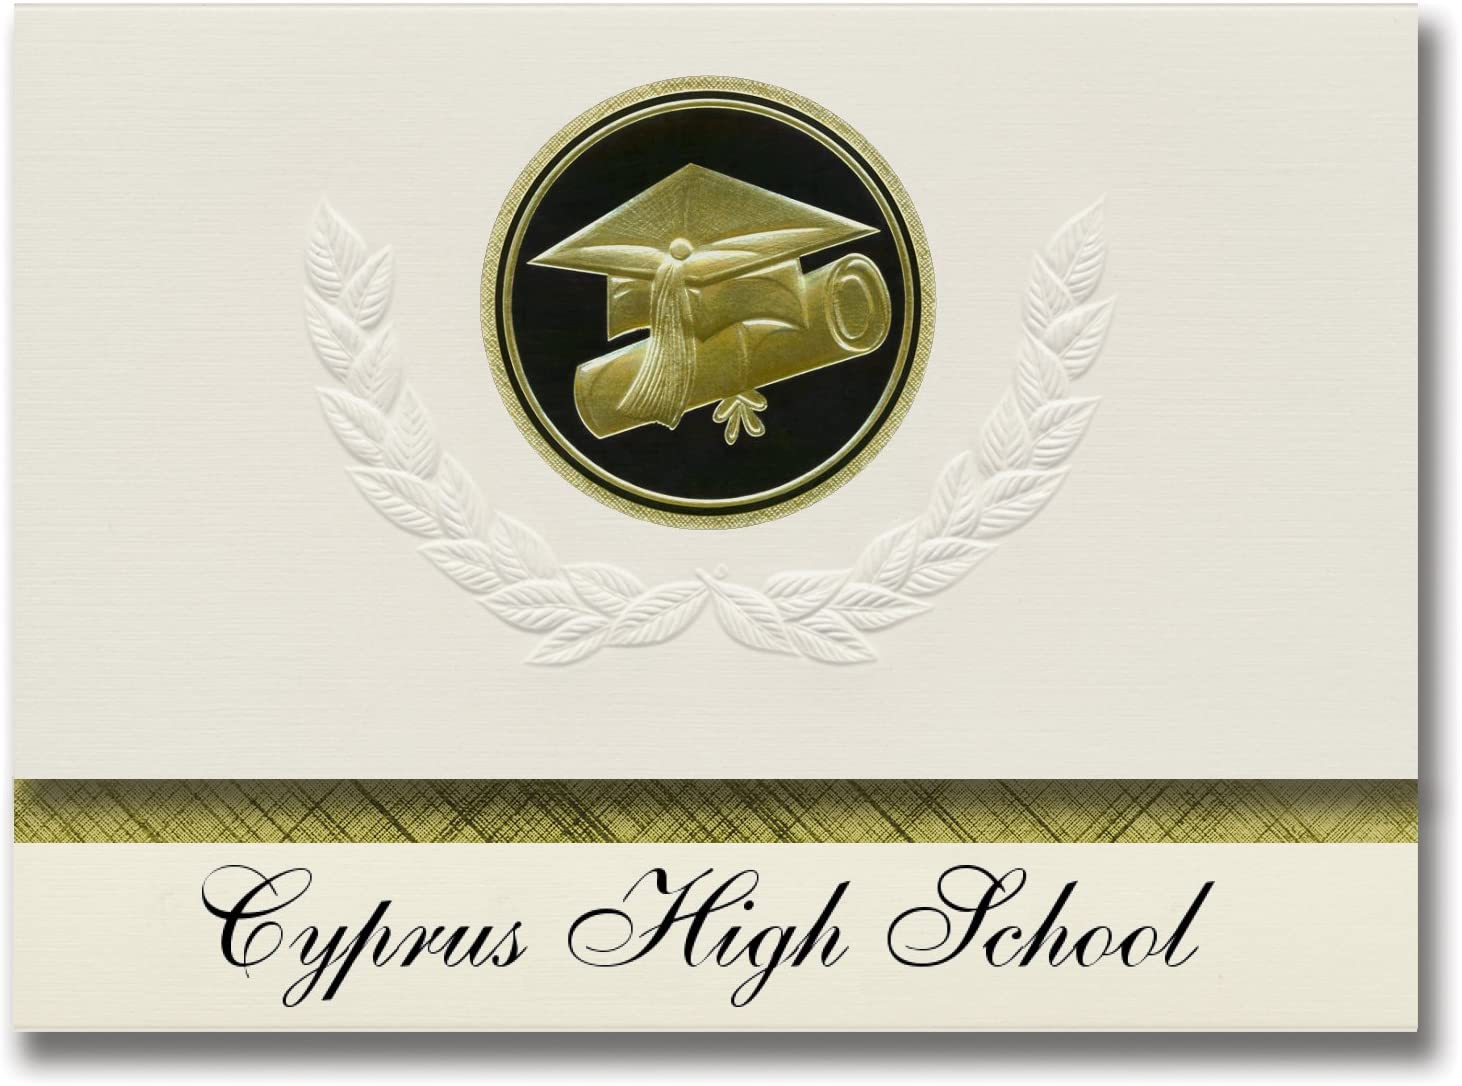 Signature Announcements Cyprus High School (Magna, UT) Graduation Announcements, Presidential style, Elite package of 25 Cap & Diploma Seal Black & Gold